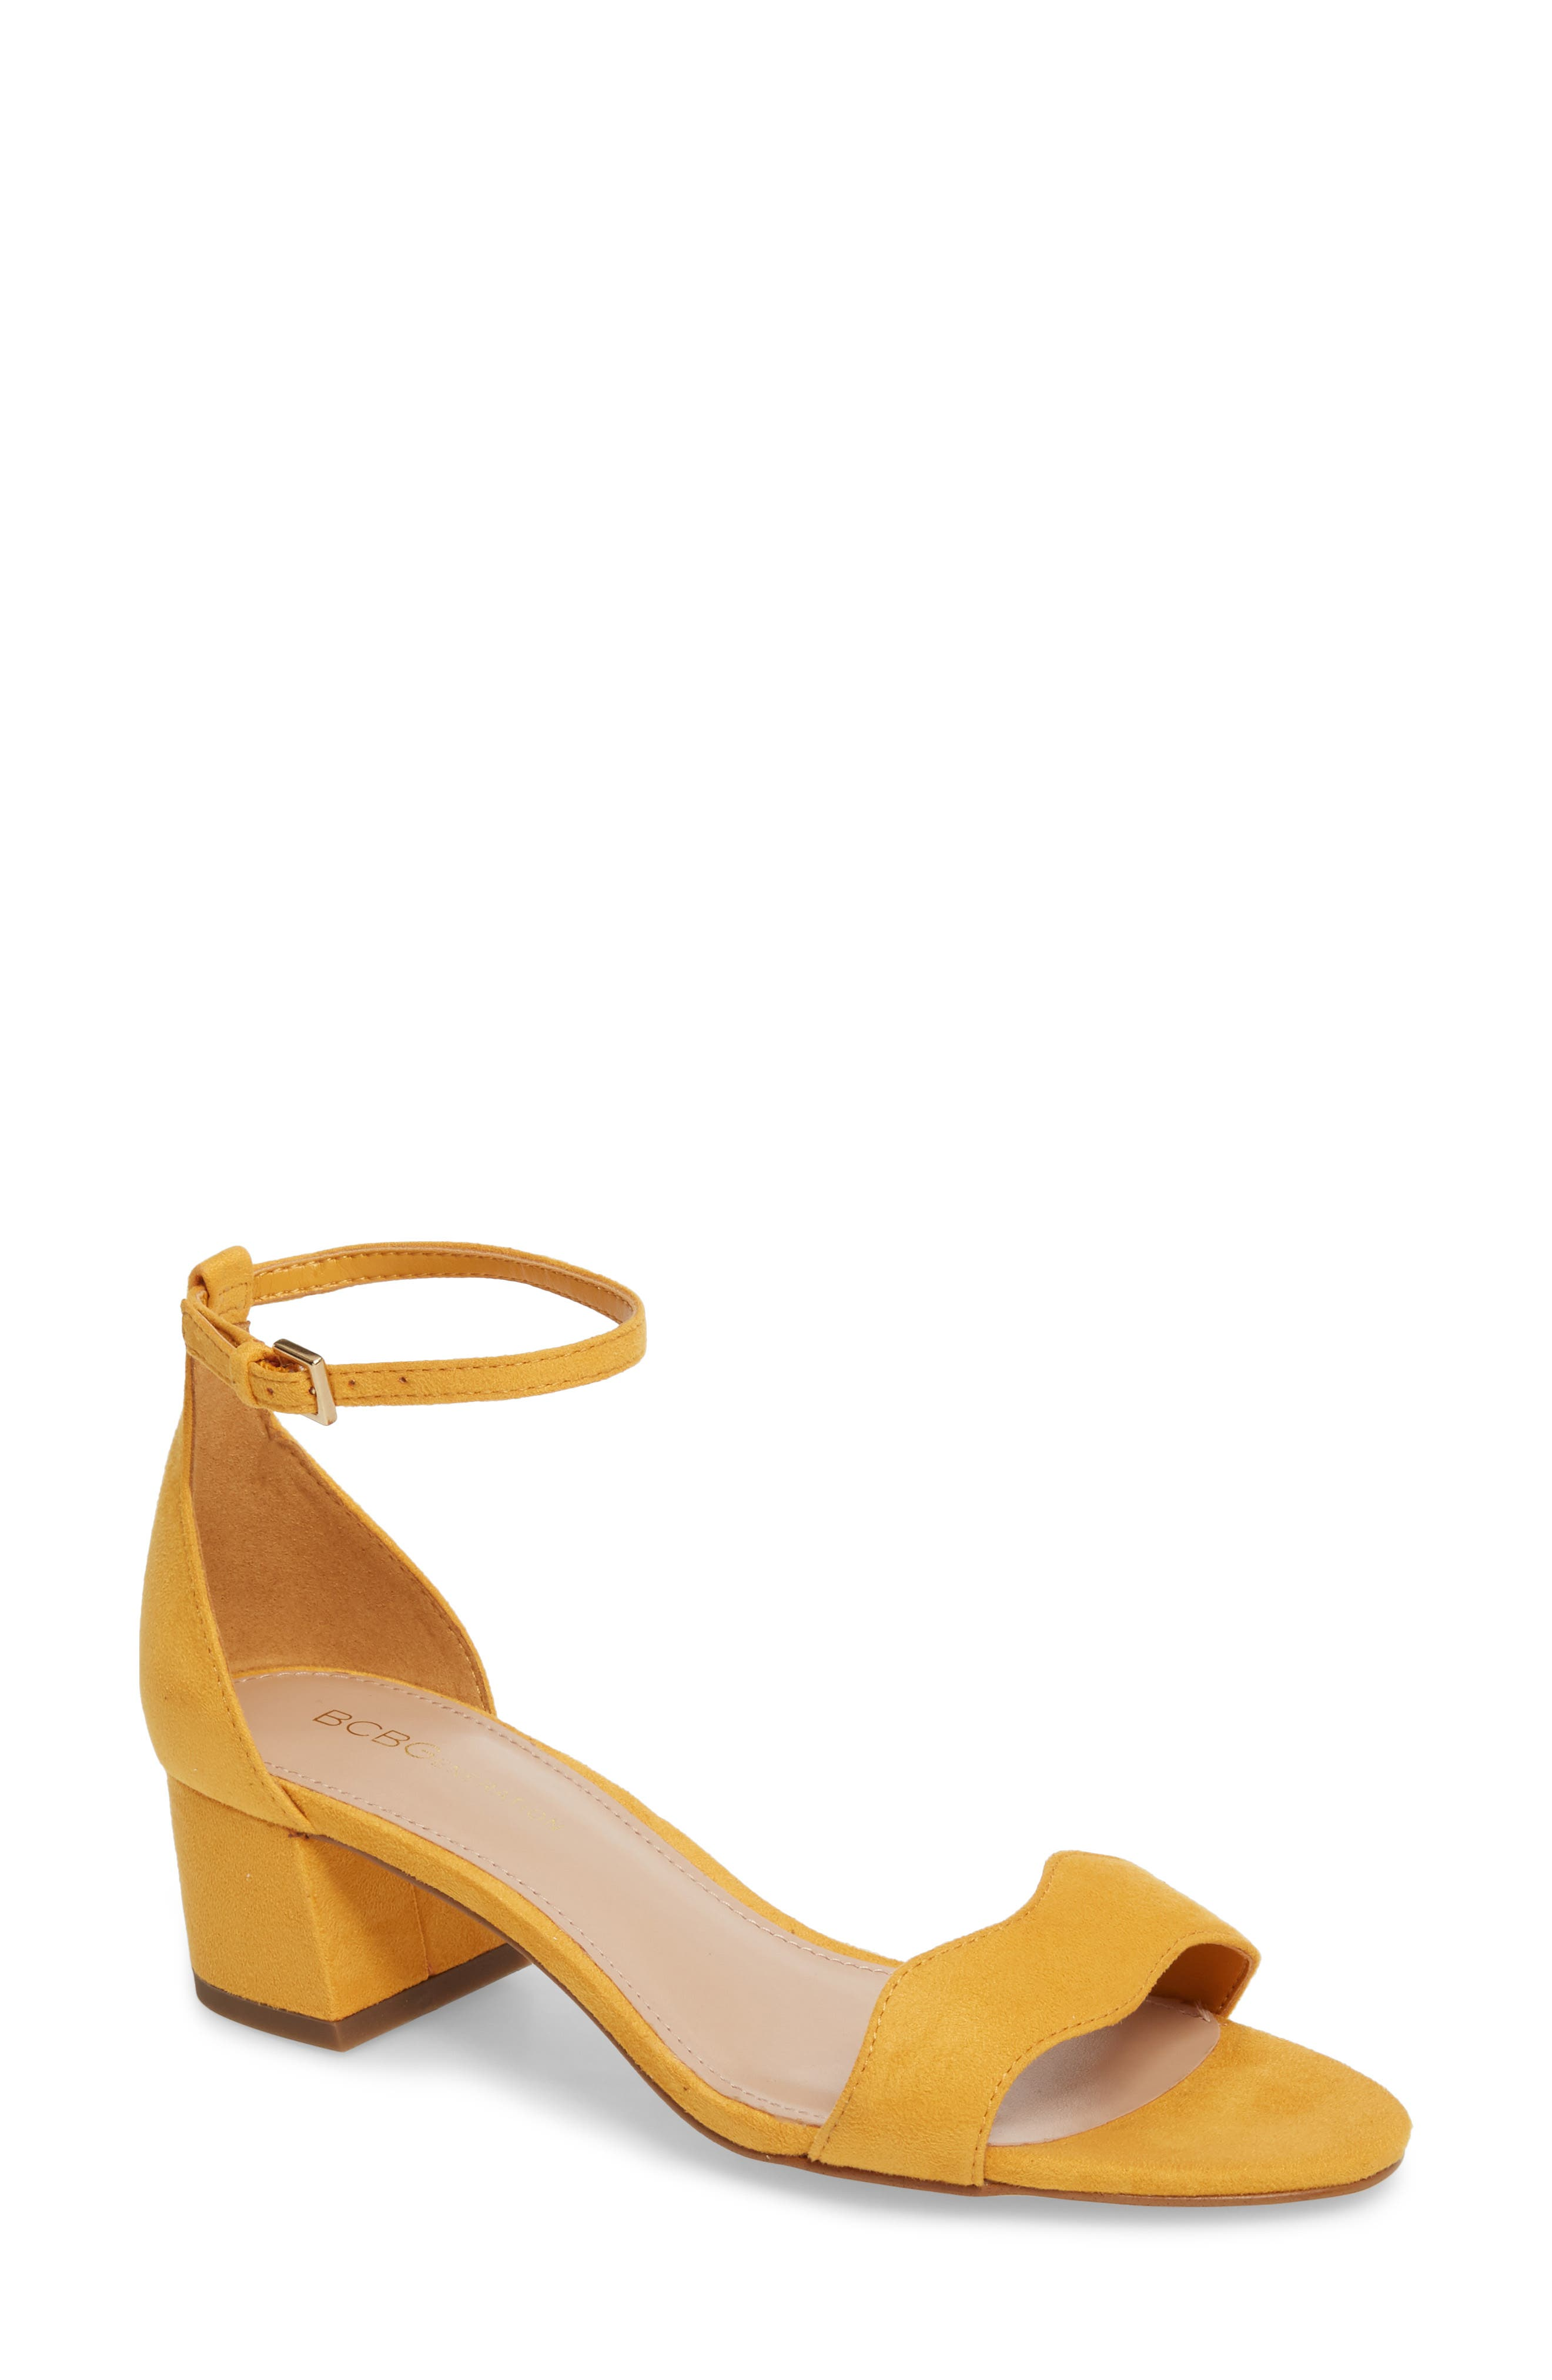 Farlyn Ankle Strap Sandal,                             Main thumbnail 1, color,                             Marigold Faux Leather